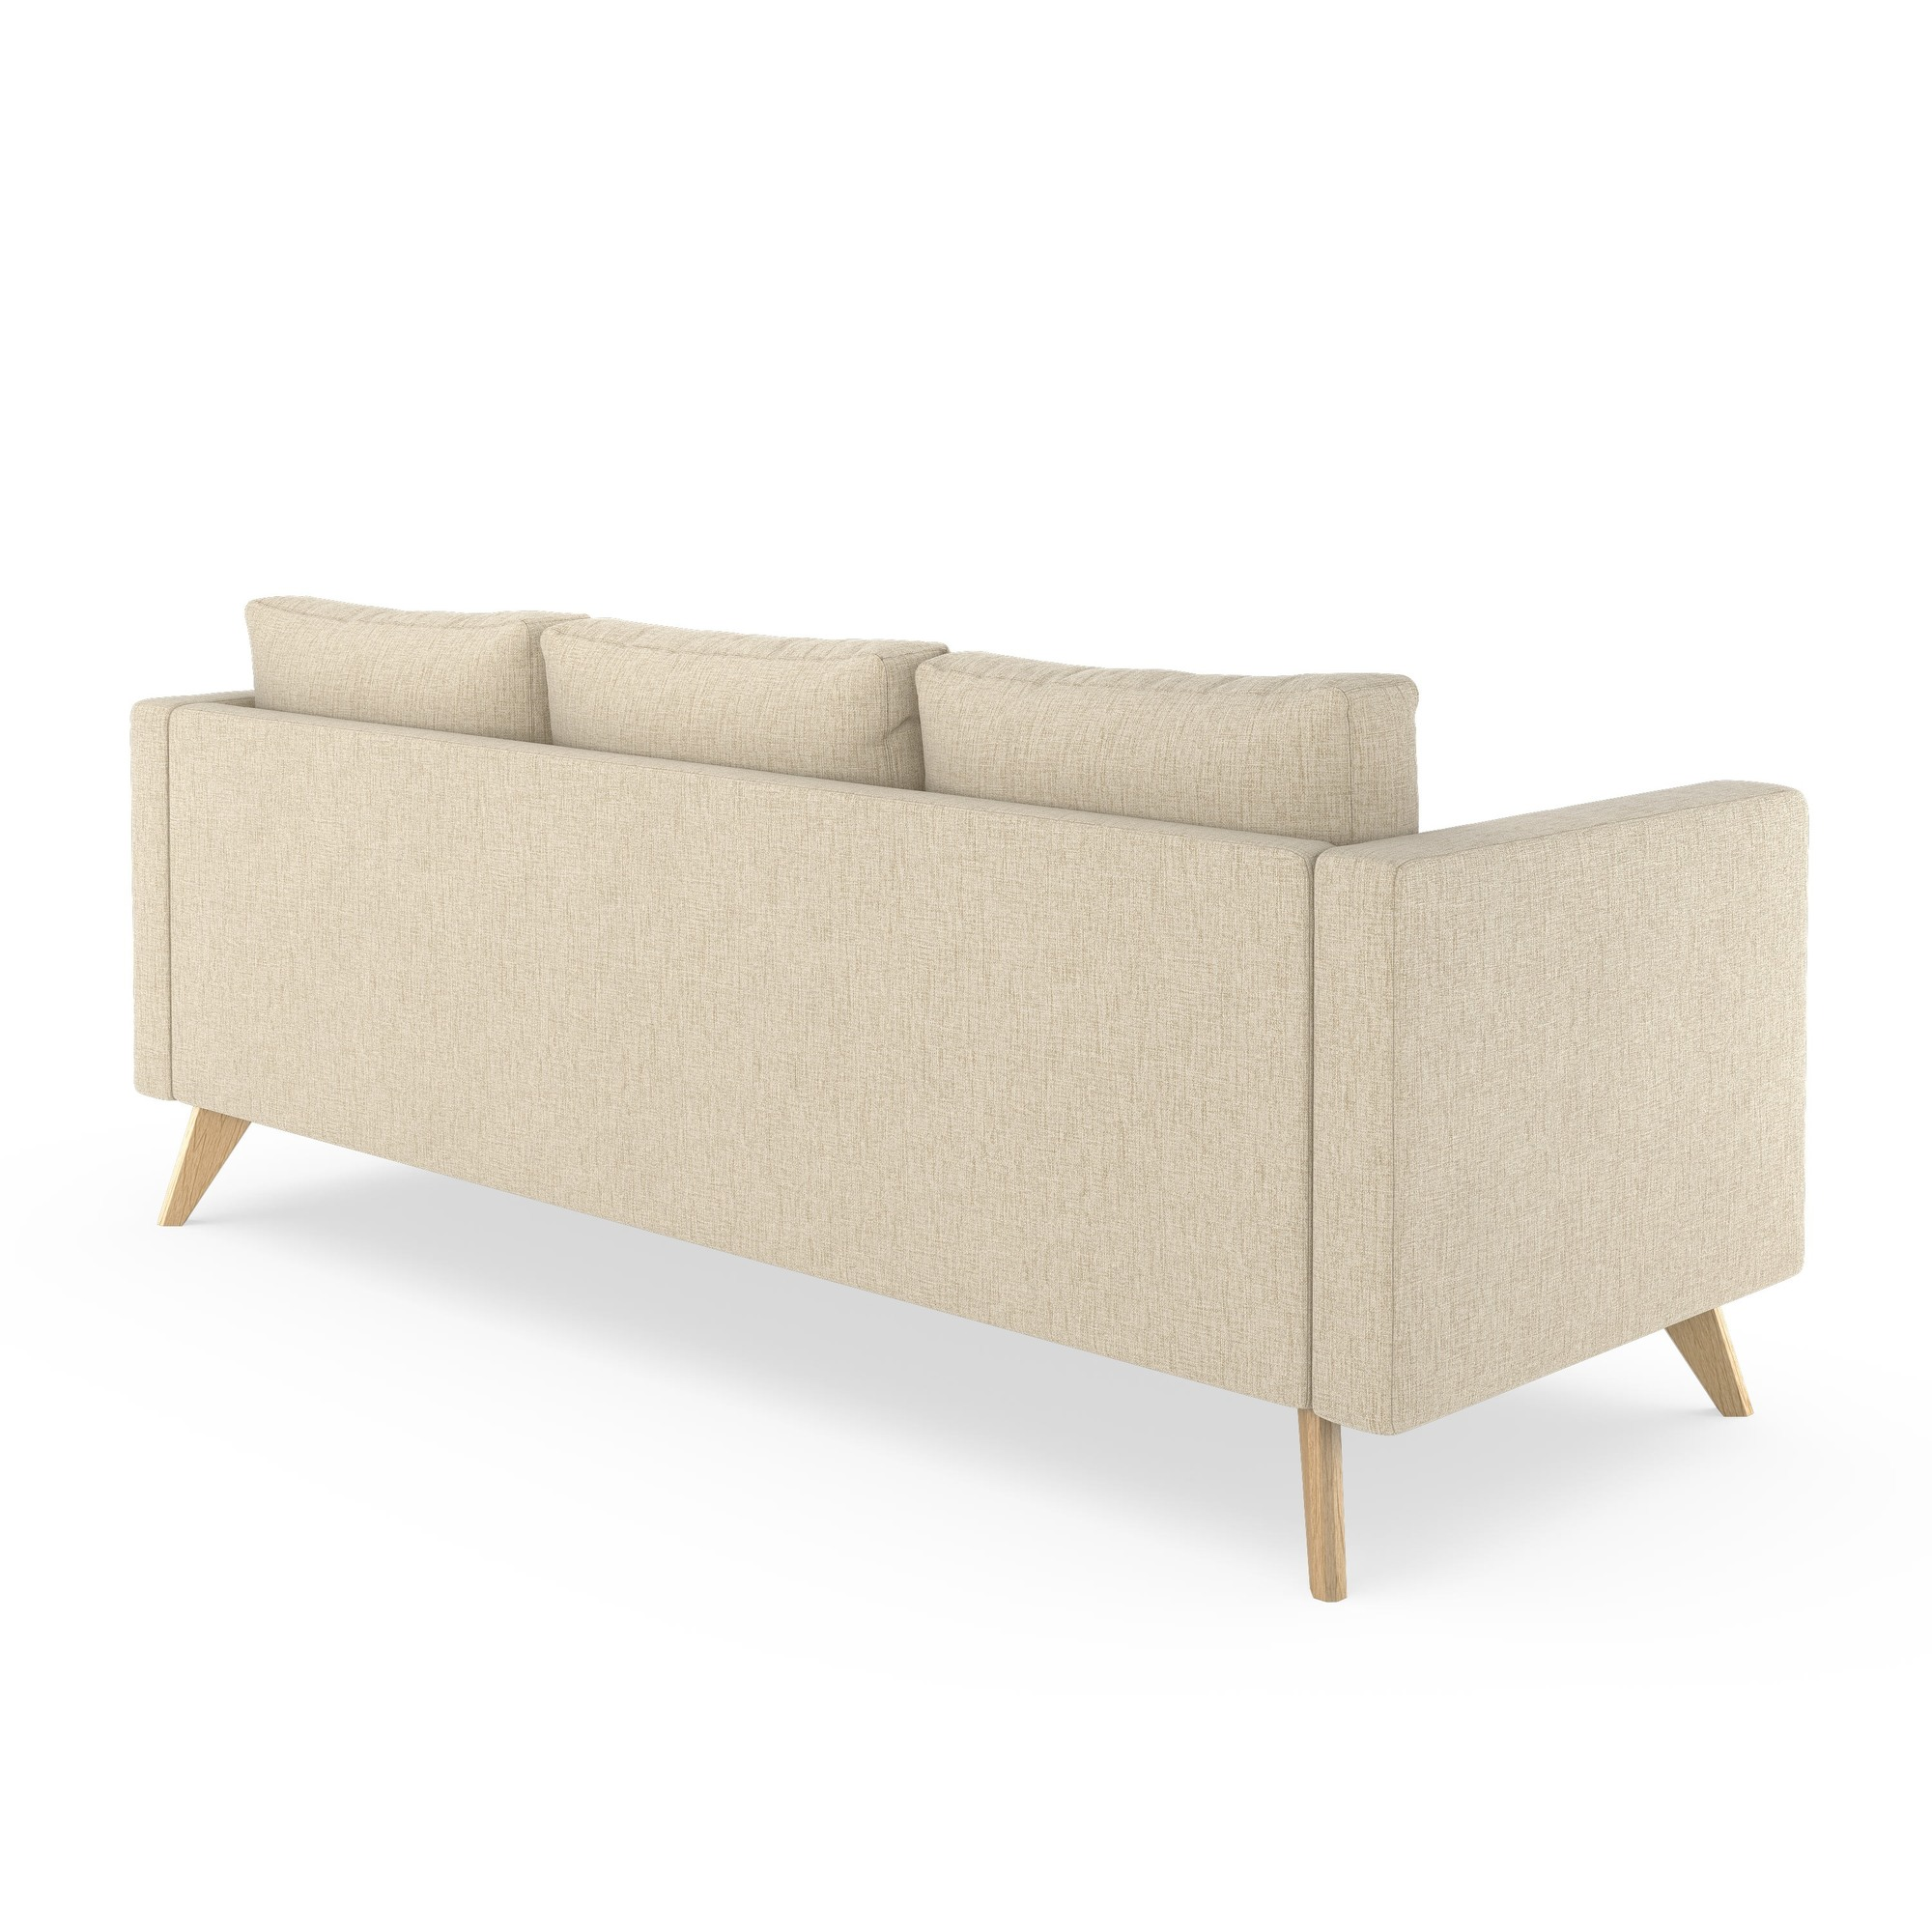 Jensen Sofa Bed Next Jensen Sofa Pebble Weave Avocado